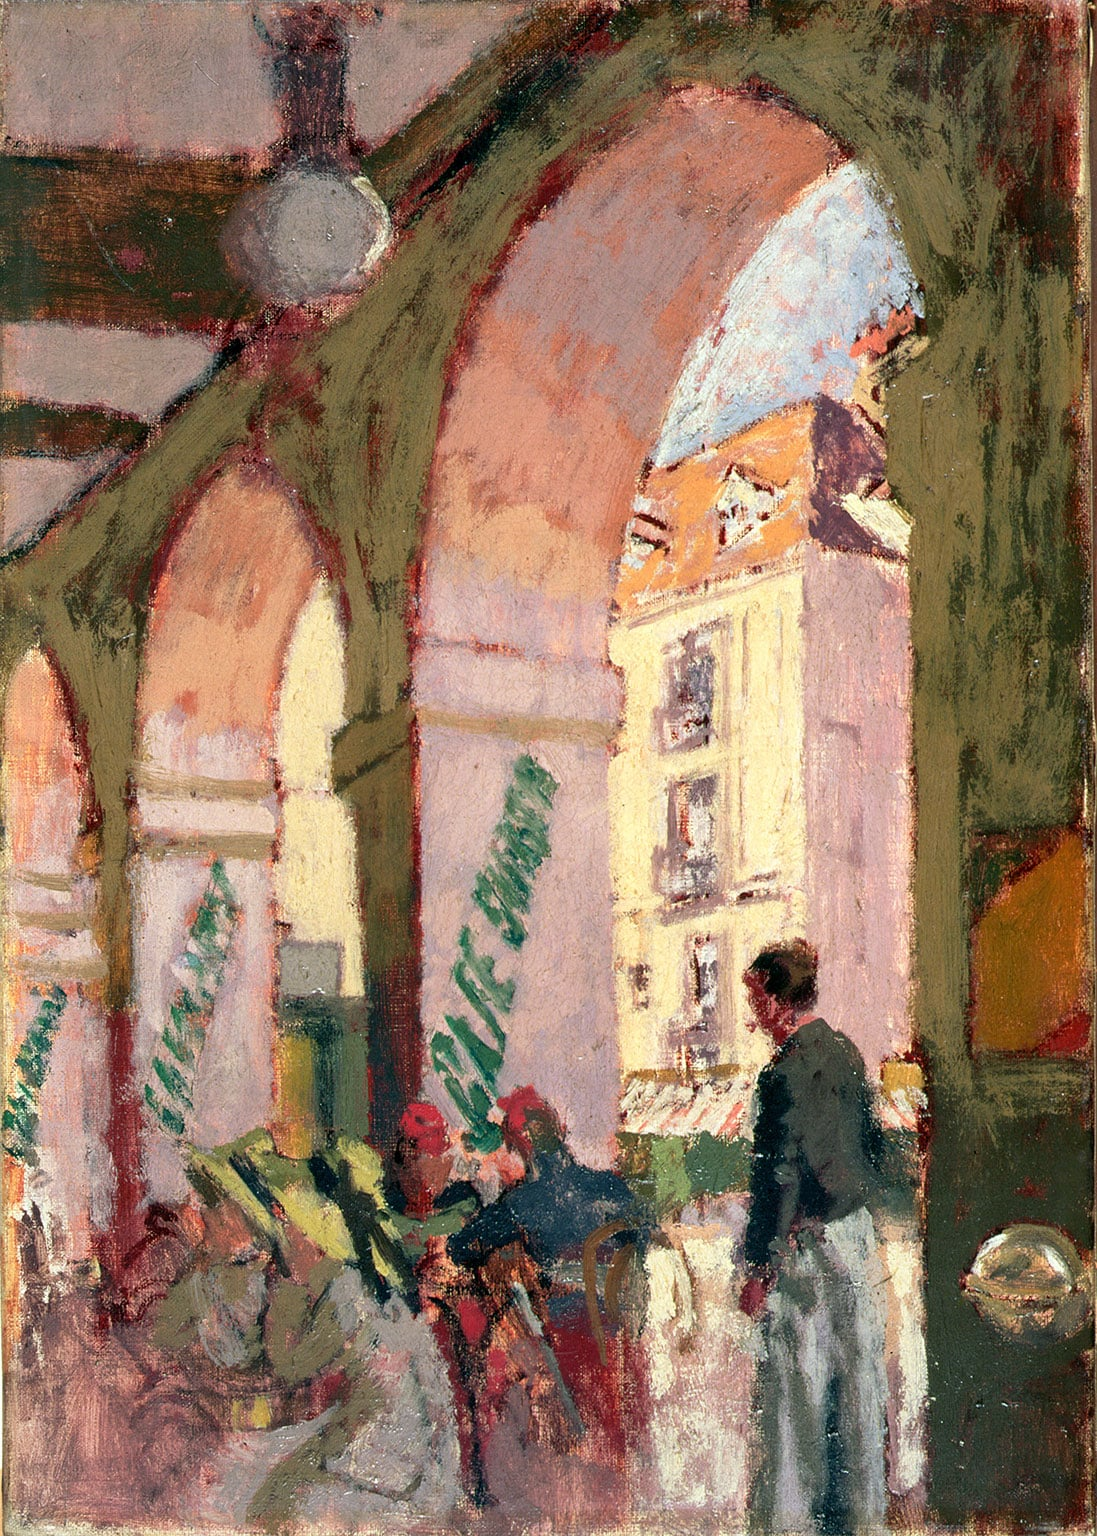 5. Sickert in Dieppe, Pallant House Gallery, reduced price with National Art Pass - Walter Sickert, The Café Suisse (Café des Arcades, Dieppe), 1914. Leeds Museums and Galleries